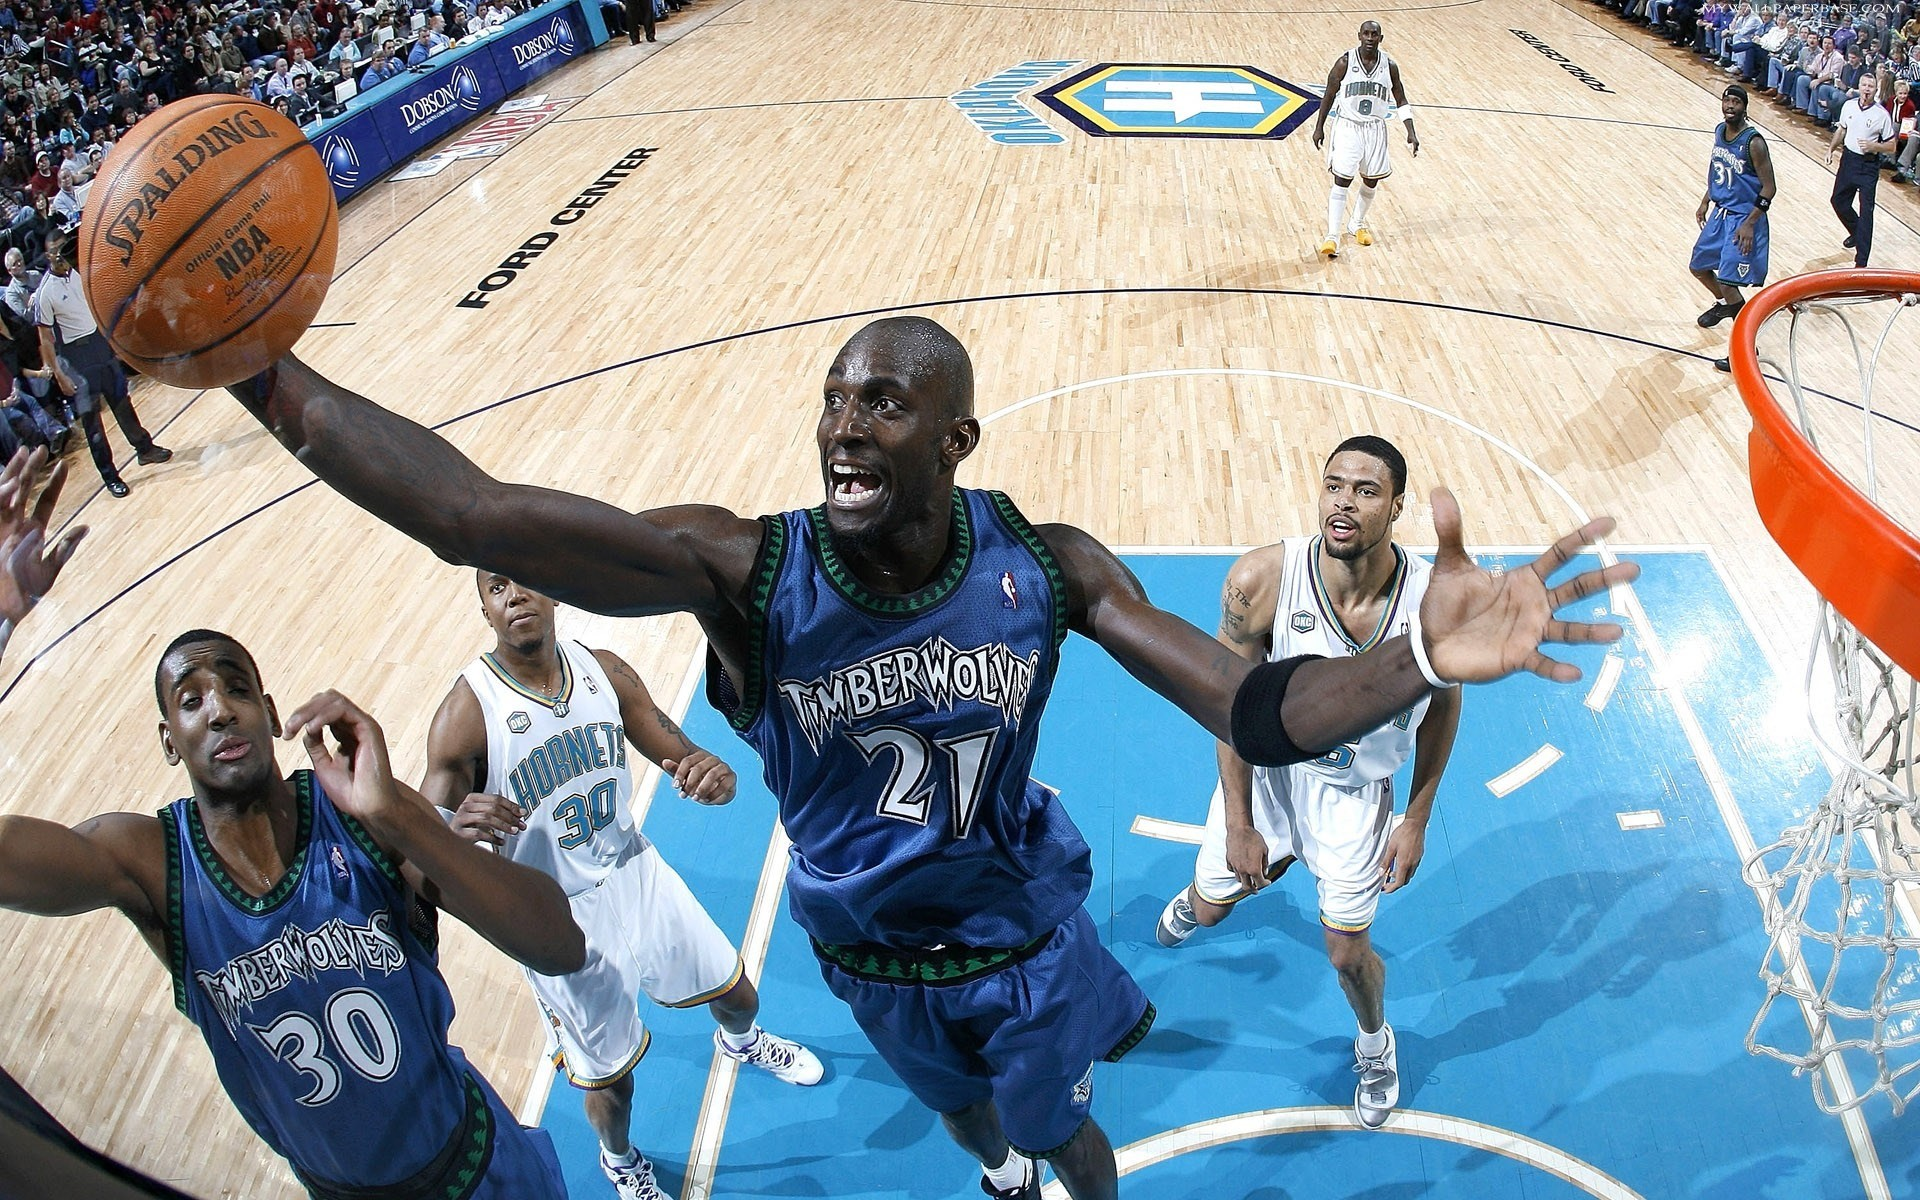 1920x1200 minnesota timberwolves image desktop nexus wallpaper, 723 kB - Worley  Chester